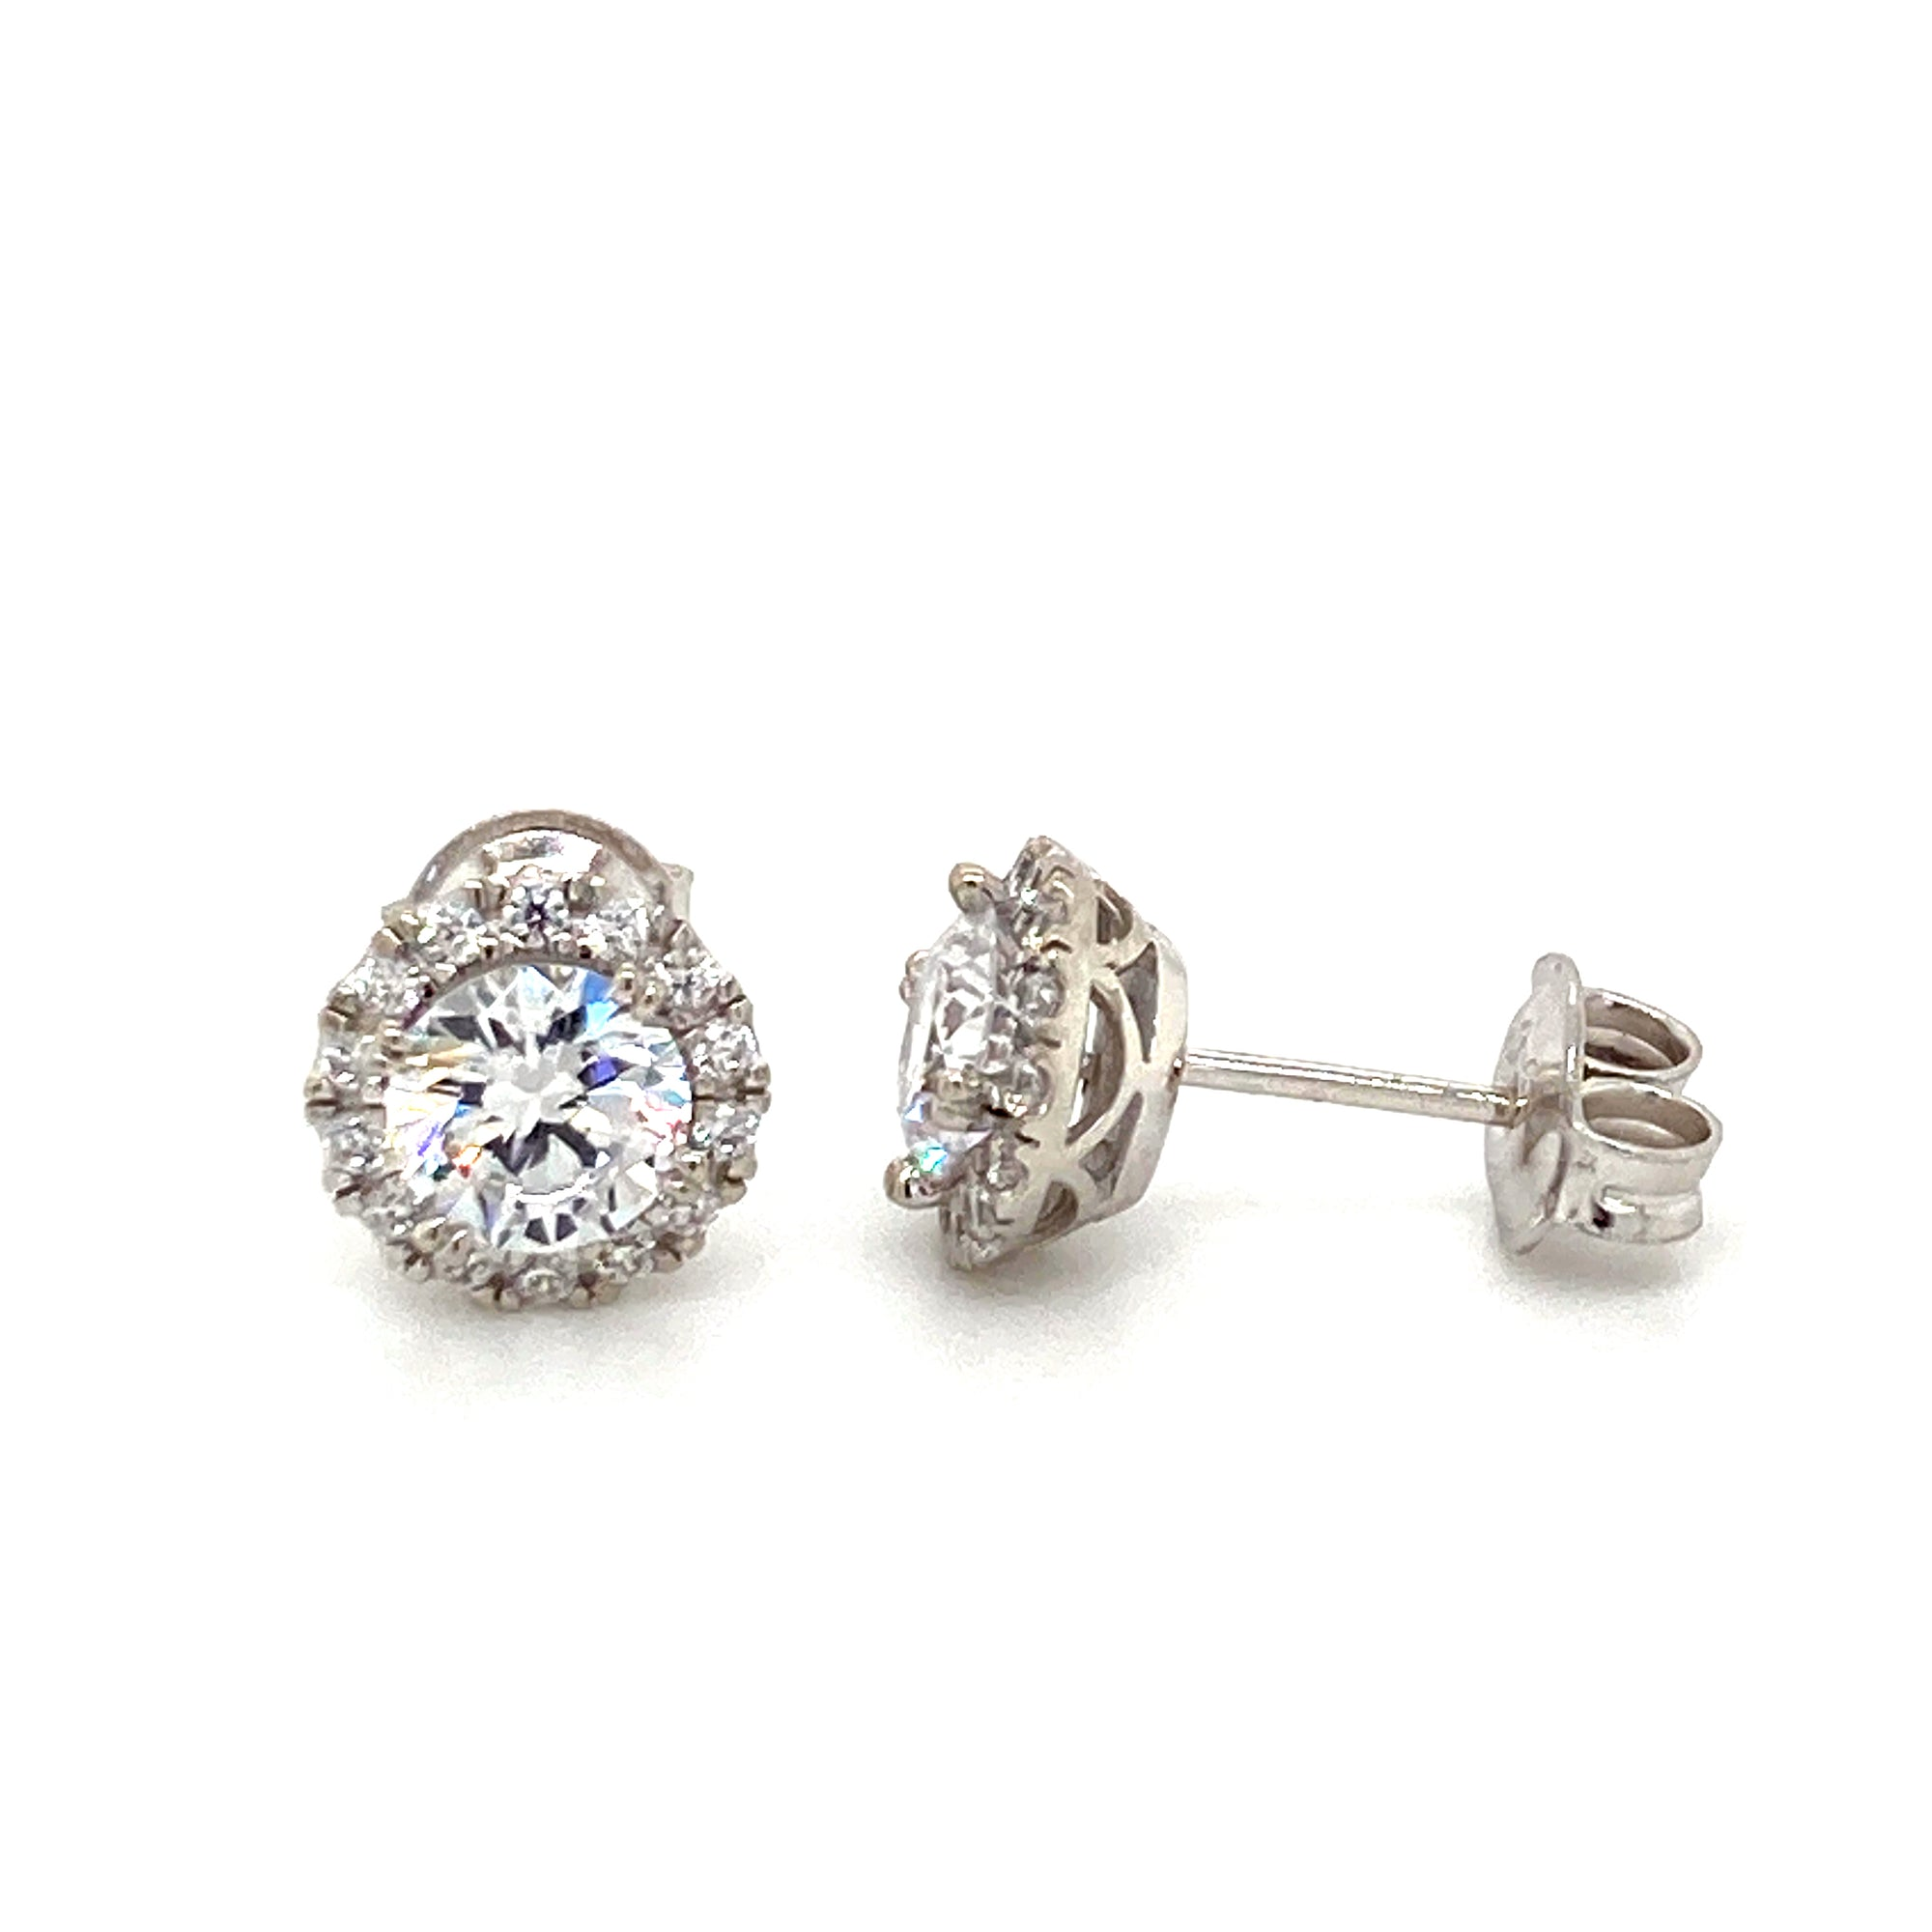 Sterling silver cz stud earrings - Red Carpet Jewellers